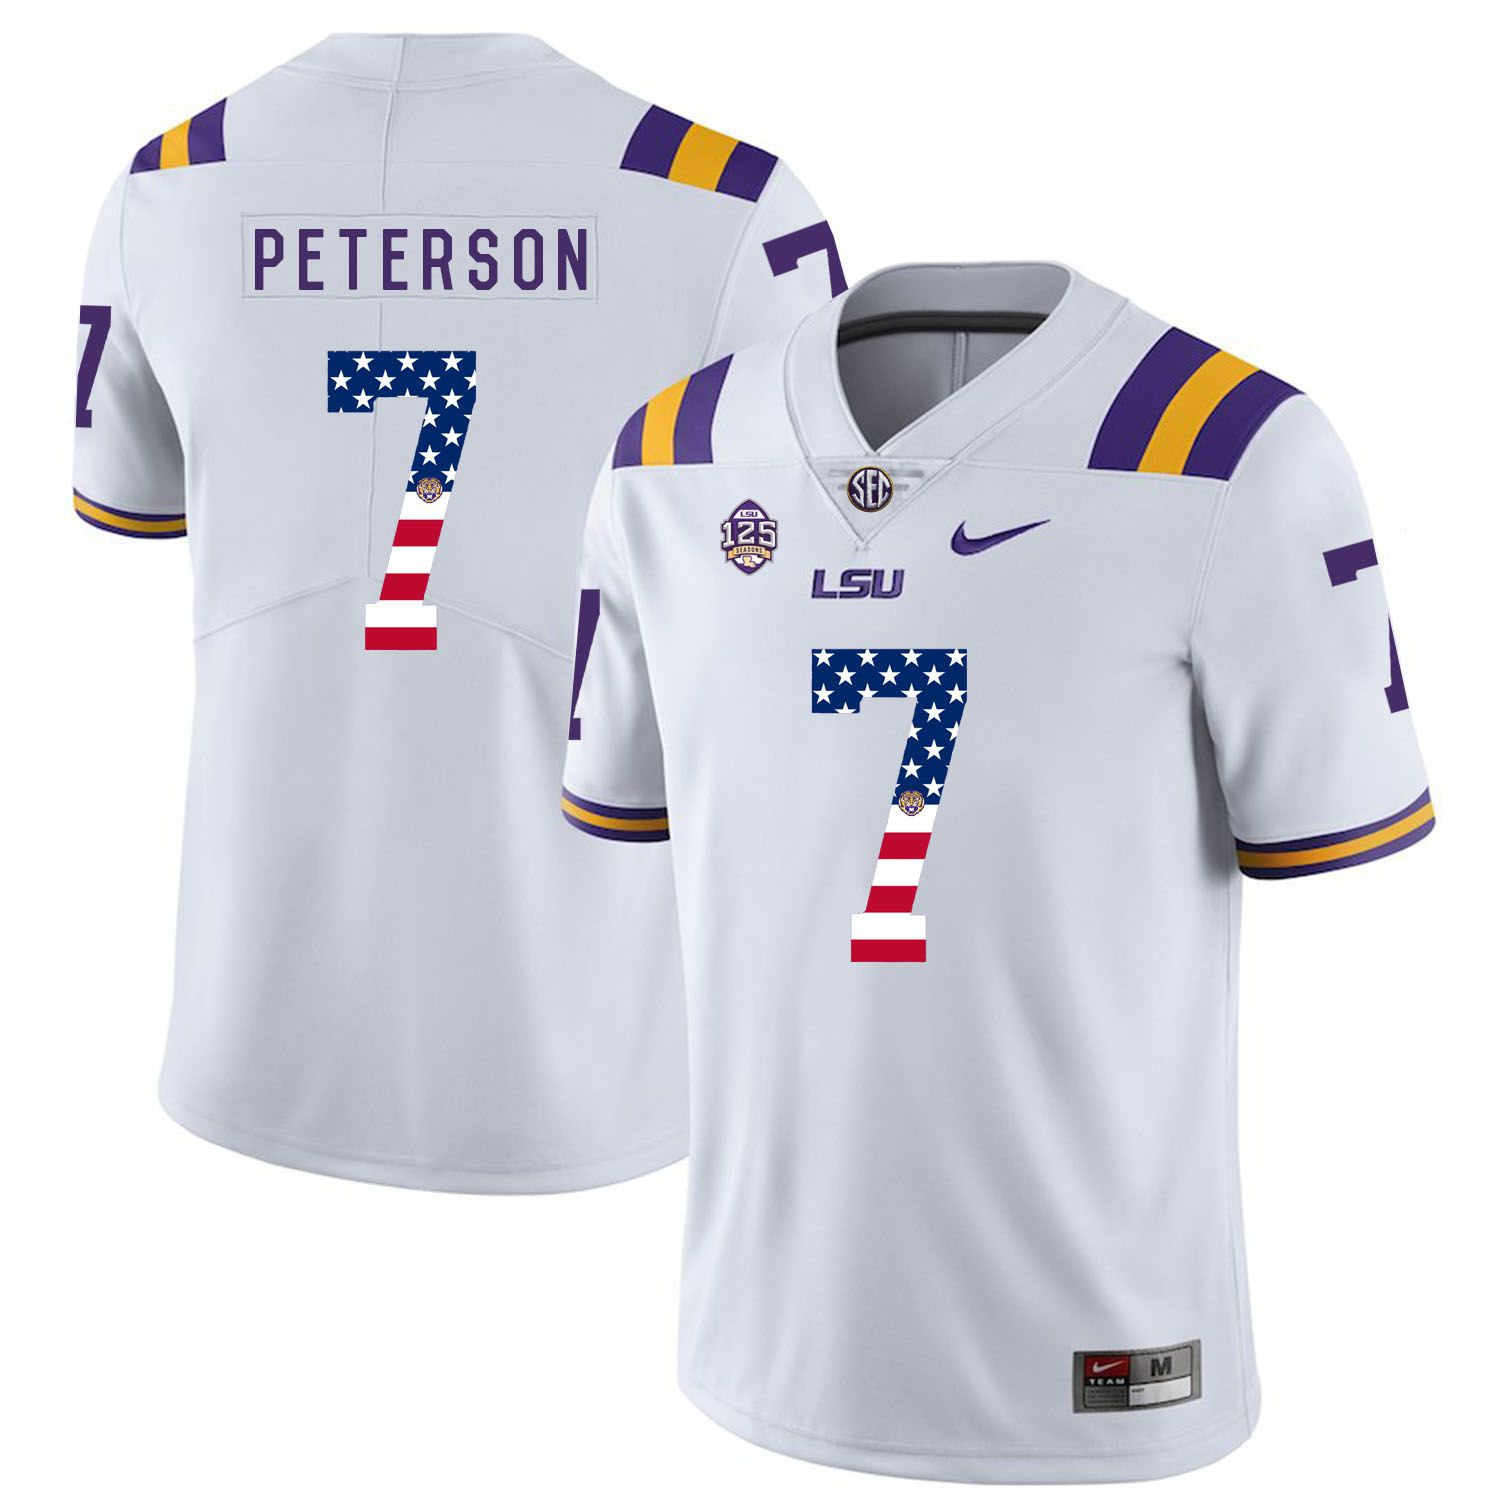 Men LSU Tigers 7 Peterson White Flag Customized NCAA Jerseys